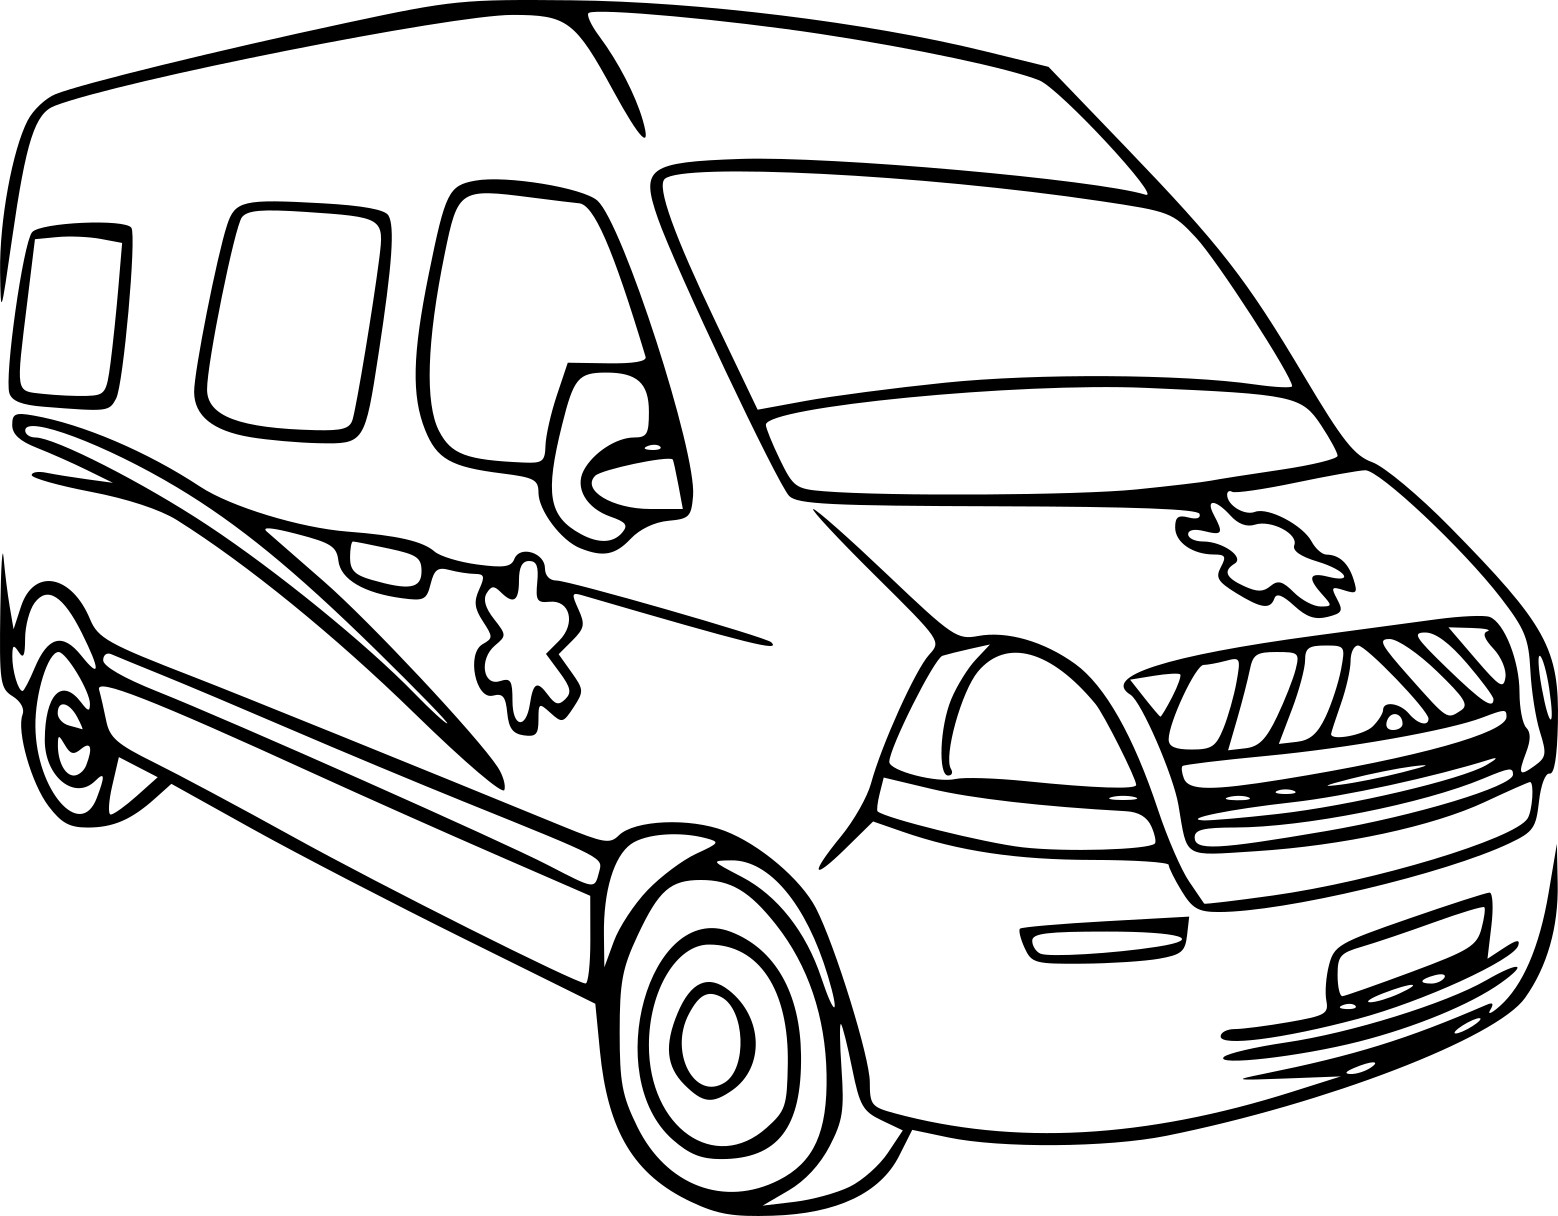 crocodile coloring pages - voiture ambulance